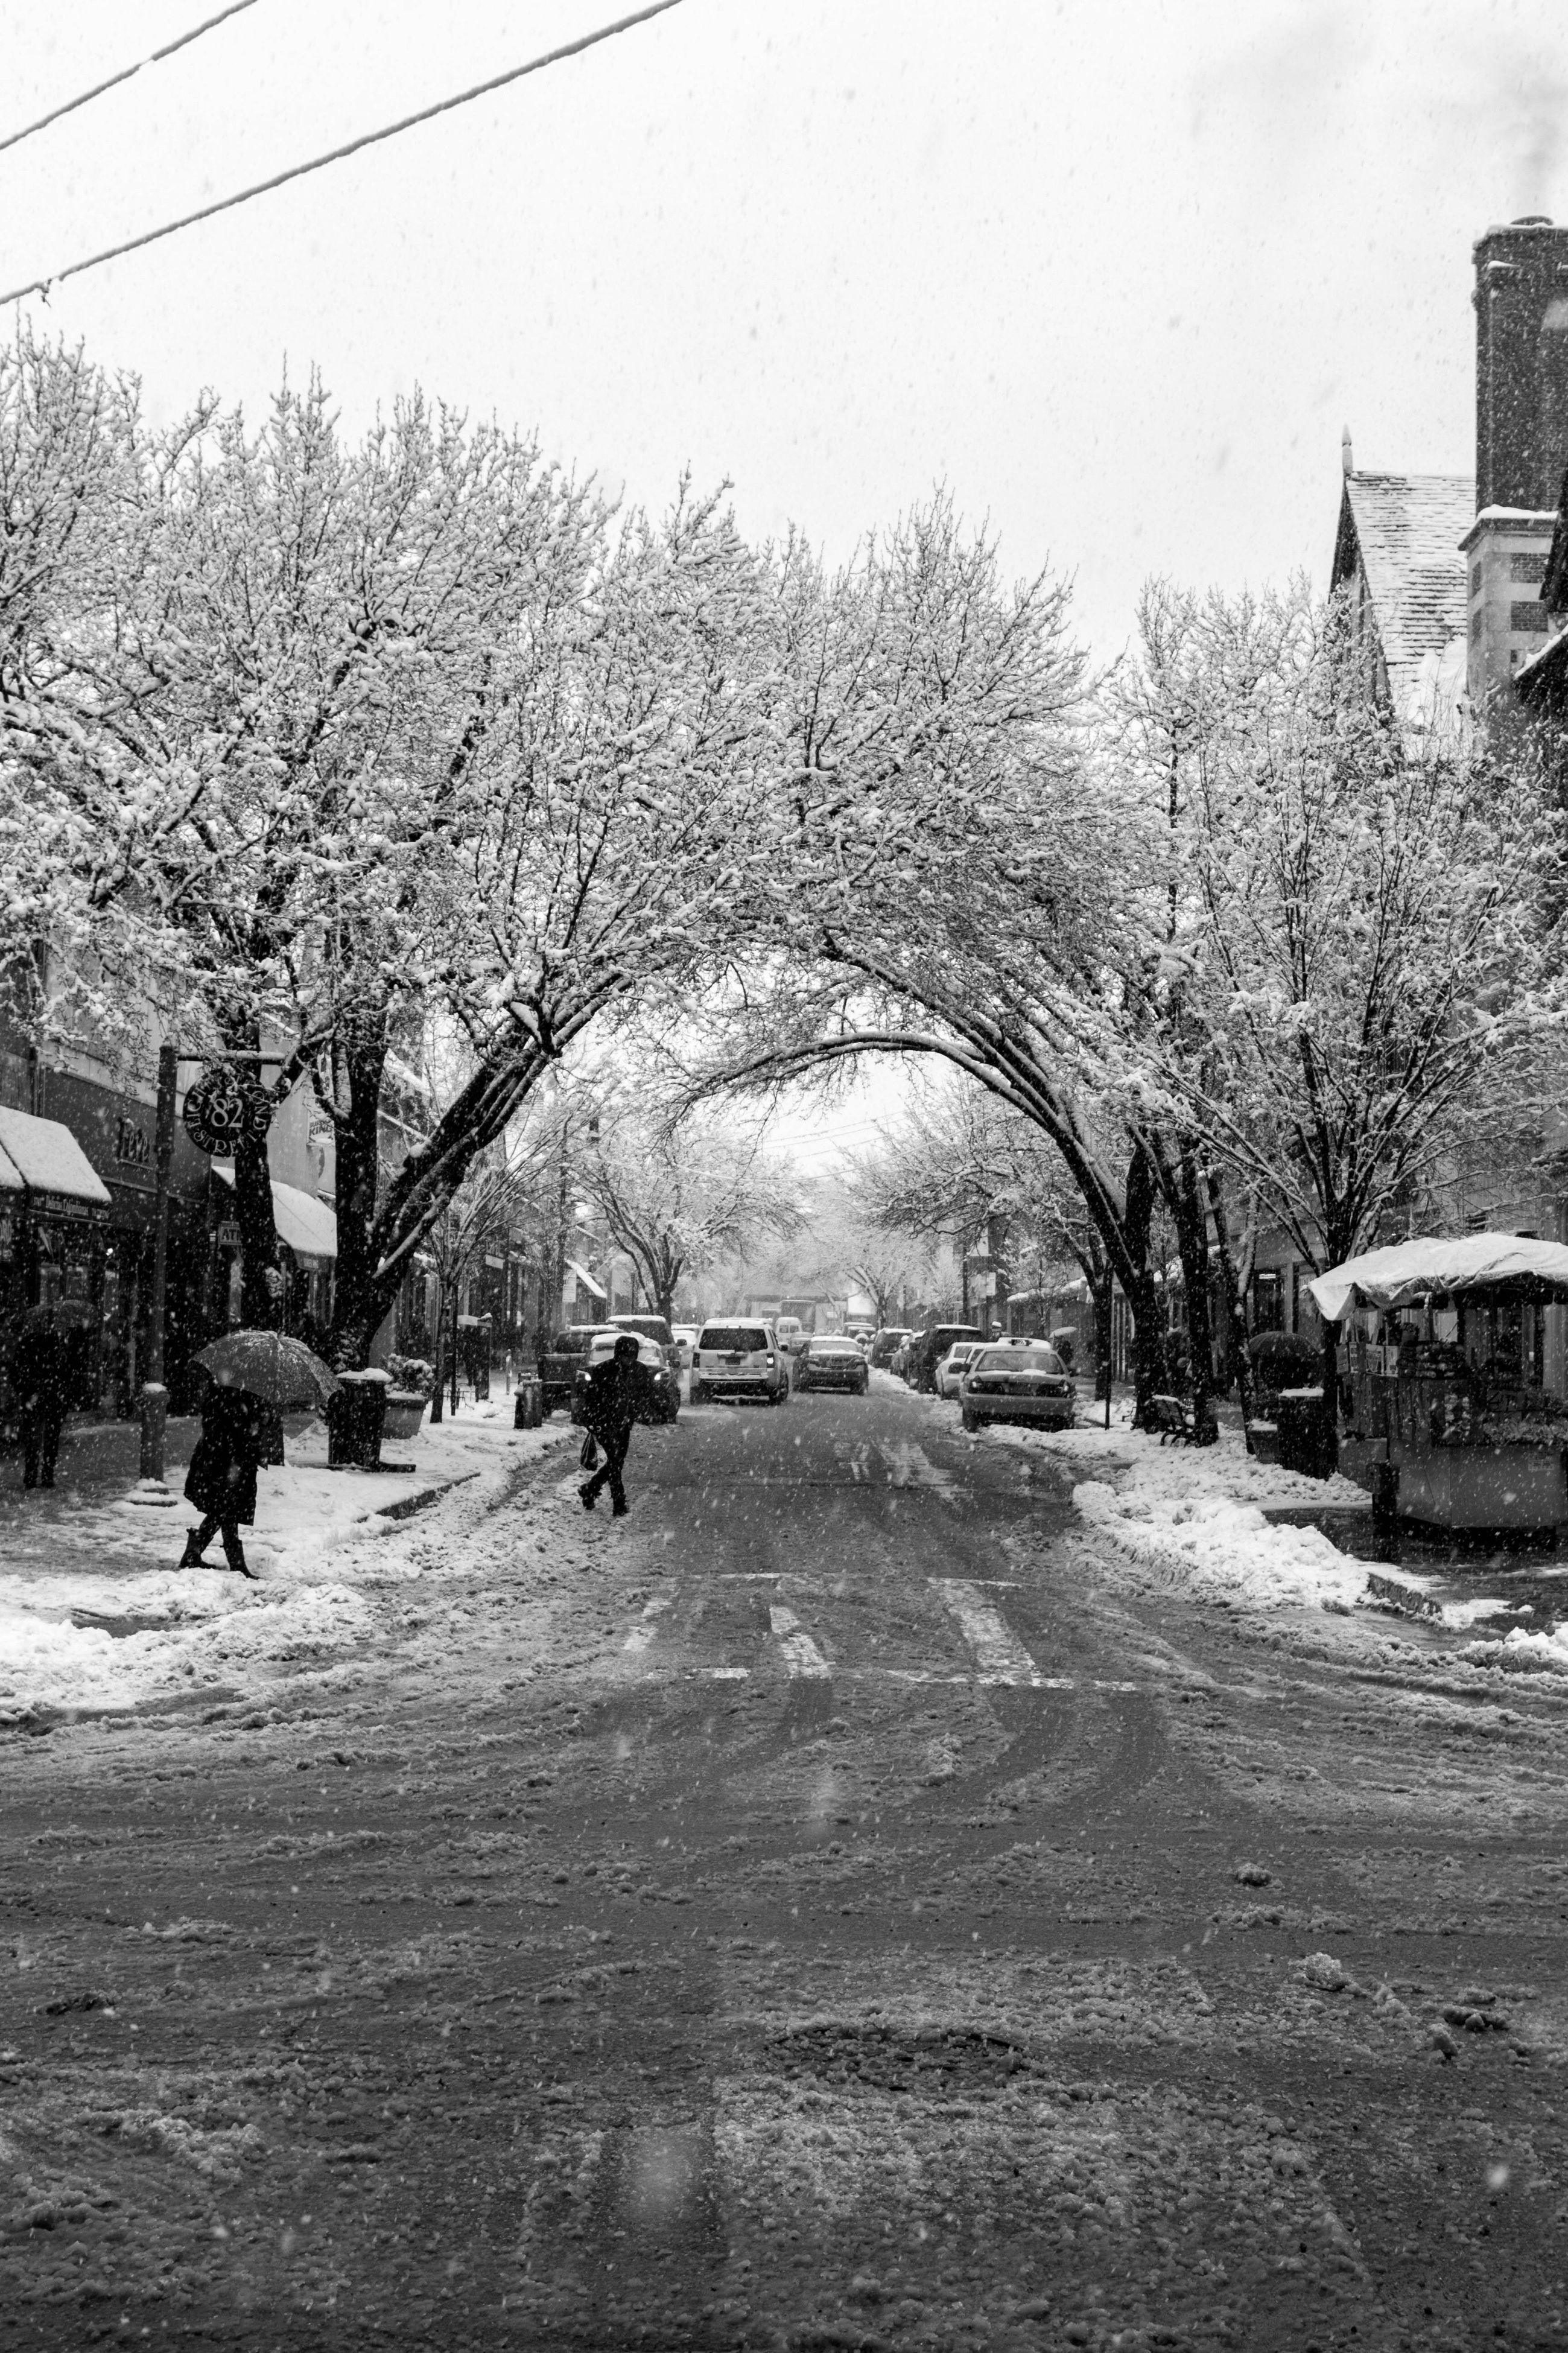 tree, car, transportation, snow, winter, season, road, cold temperature, street, mode of transport, land vehicle, weather, the way forward, bare tree, nature, day, diminishing perspective, city life, tranquil scene, scenics, outdoors, tranquility